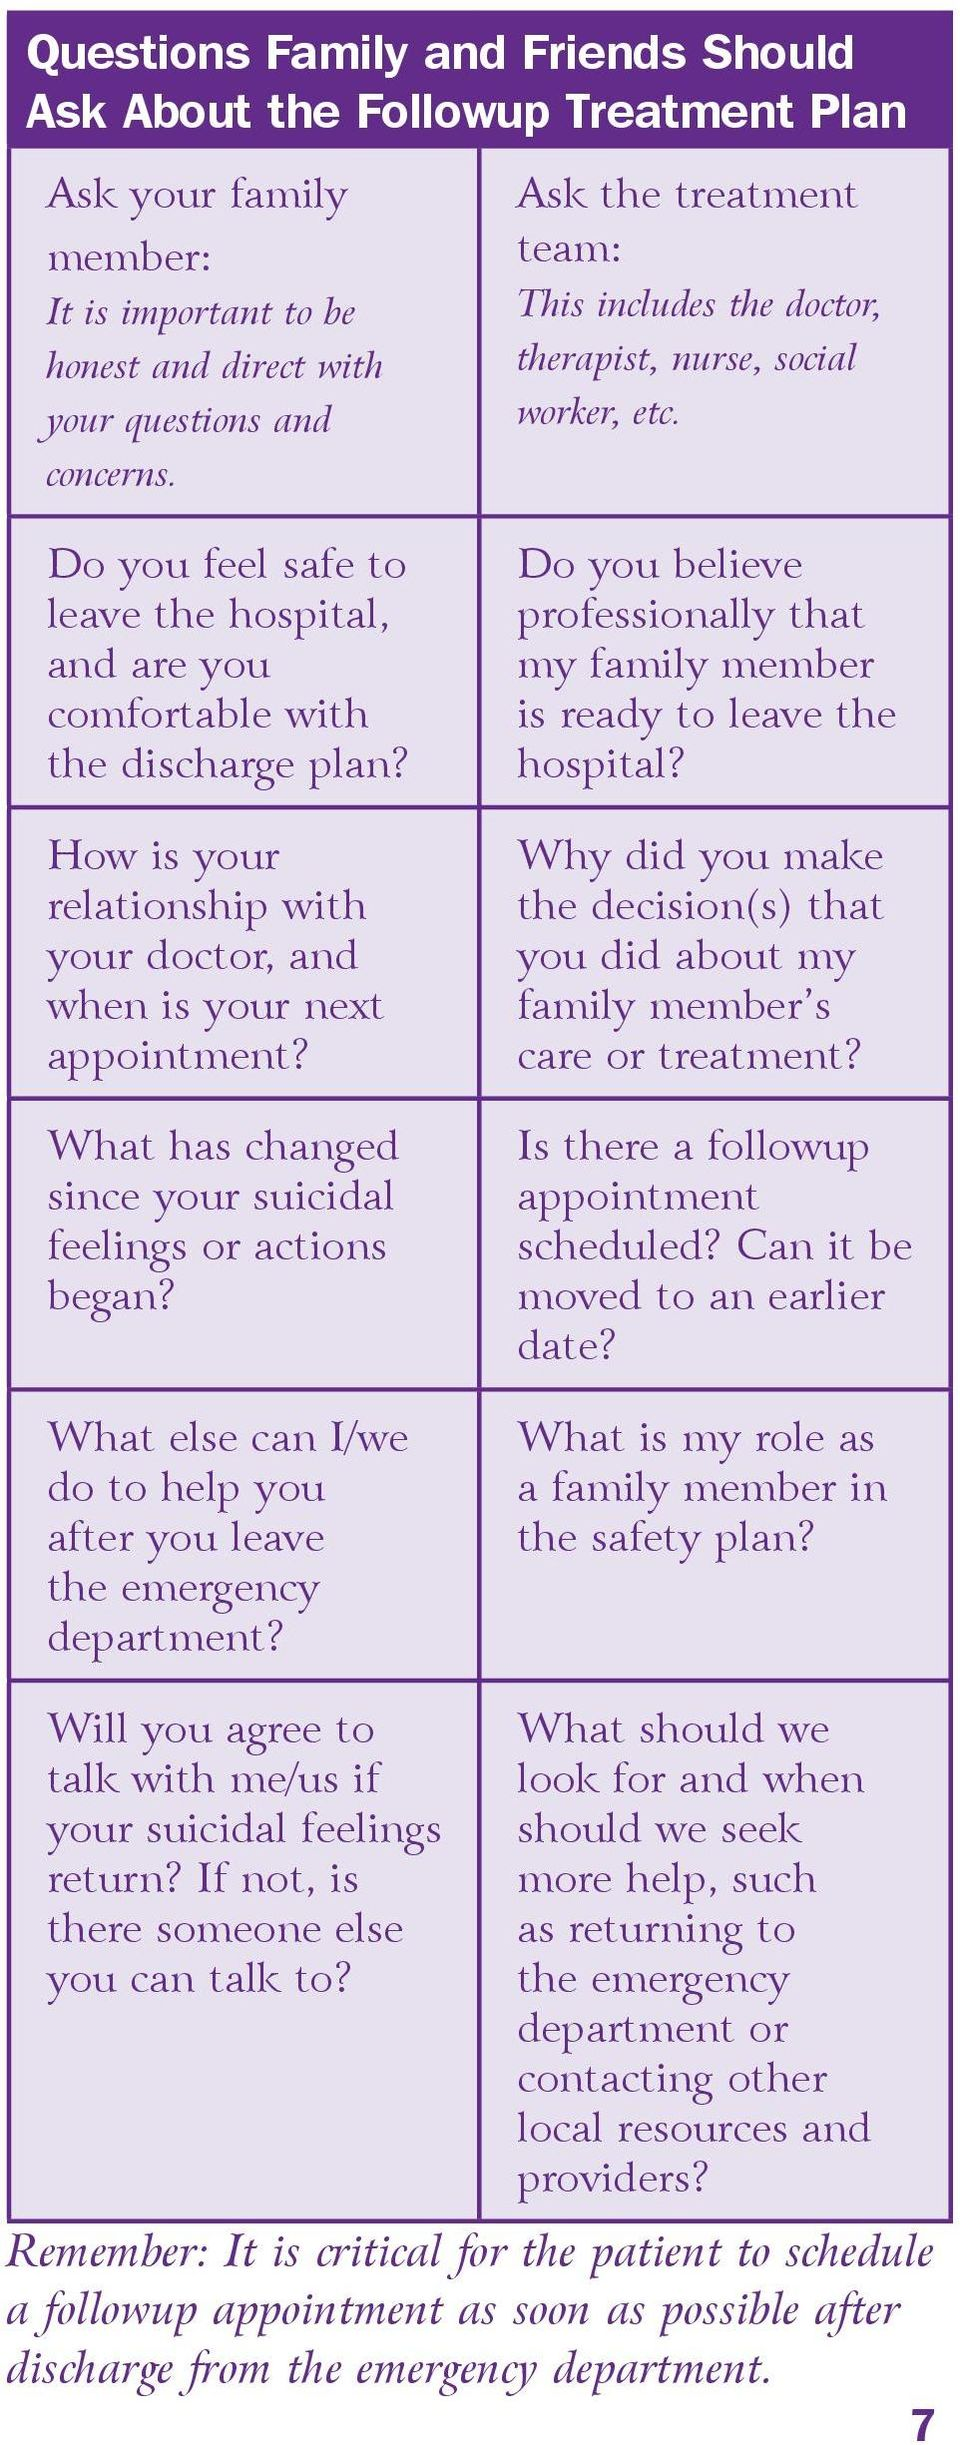 What has changed since your suicidal feelings or actions began? What else can I/we do to help you after you leave the emergency department?